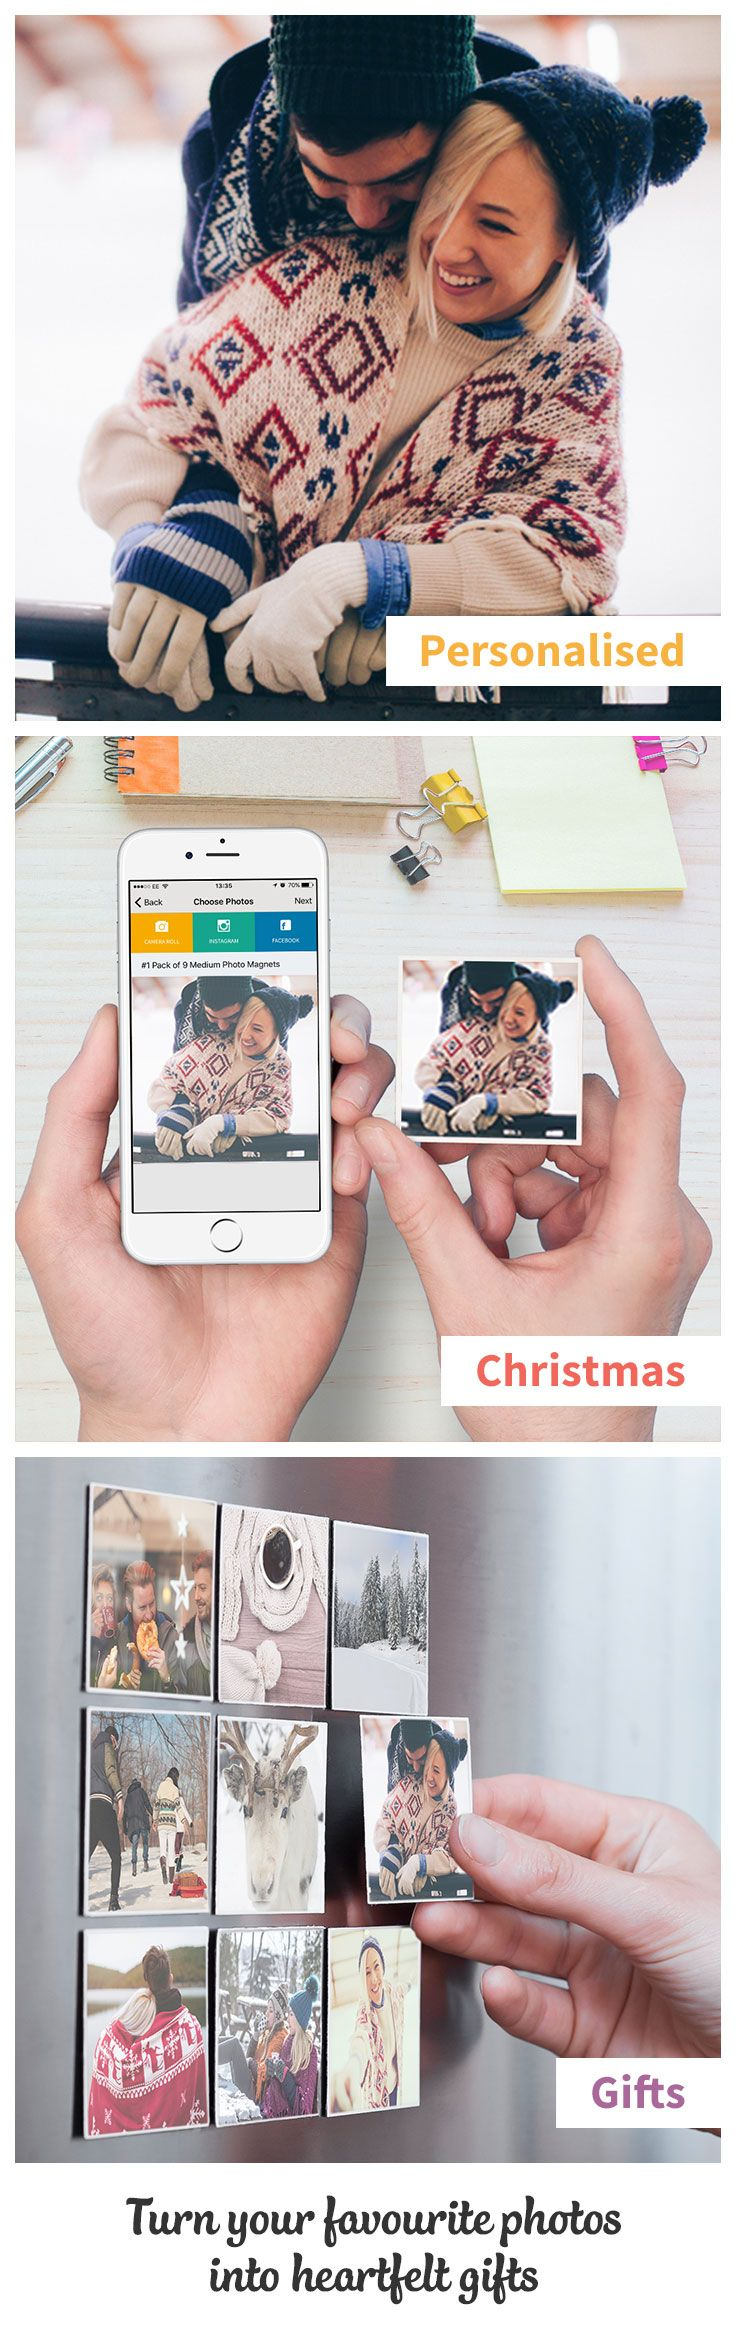 Create personalised Christmas gifts for your loved ones. Print your photos on brilliant Magnets. Make your fridge cooler! Download our App now.